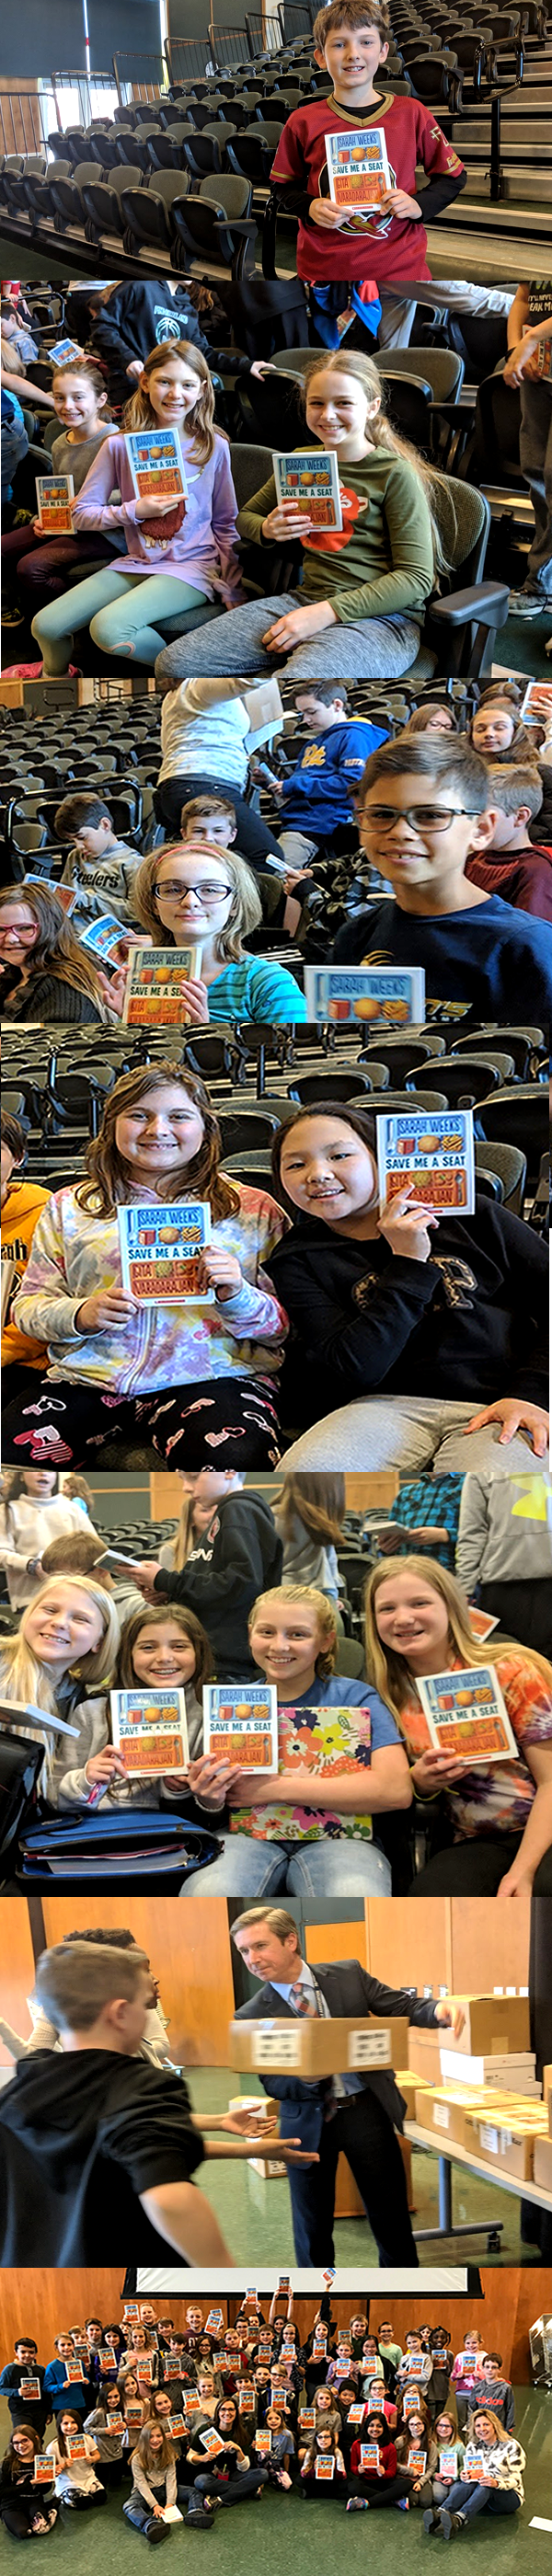 Reading Program: Students with Books